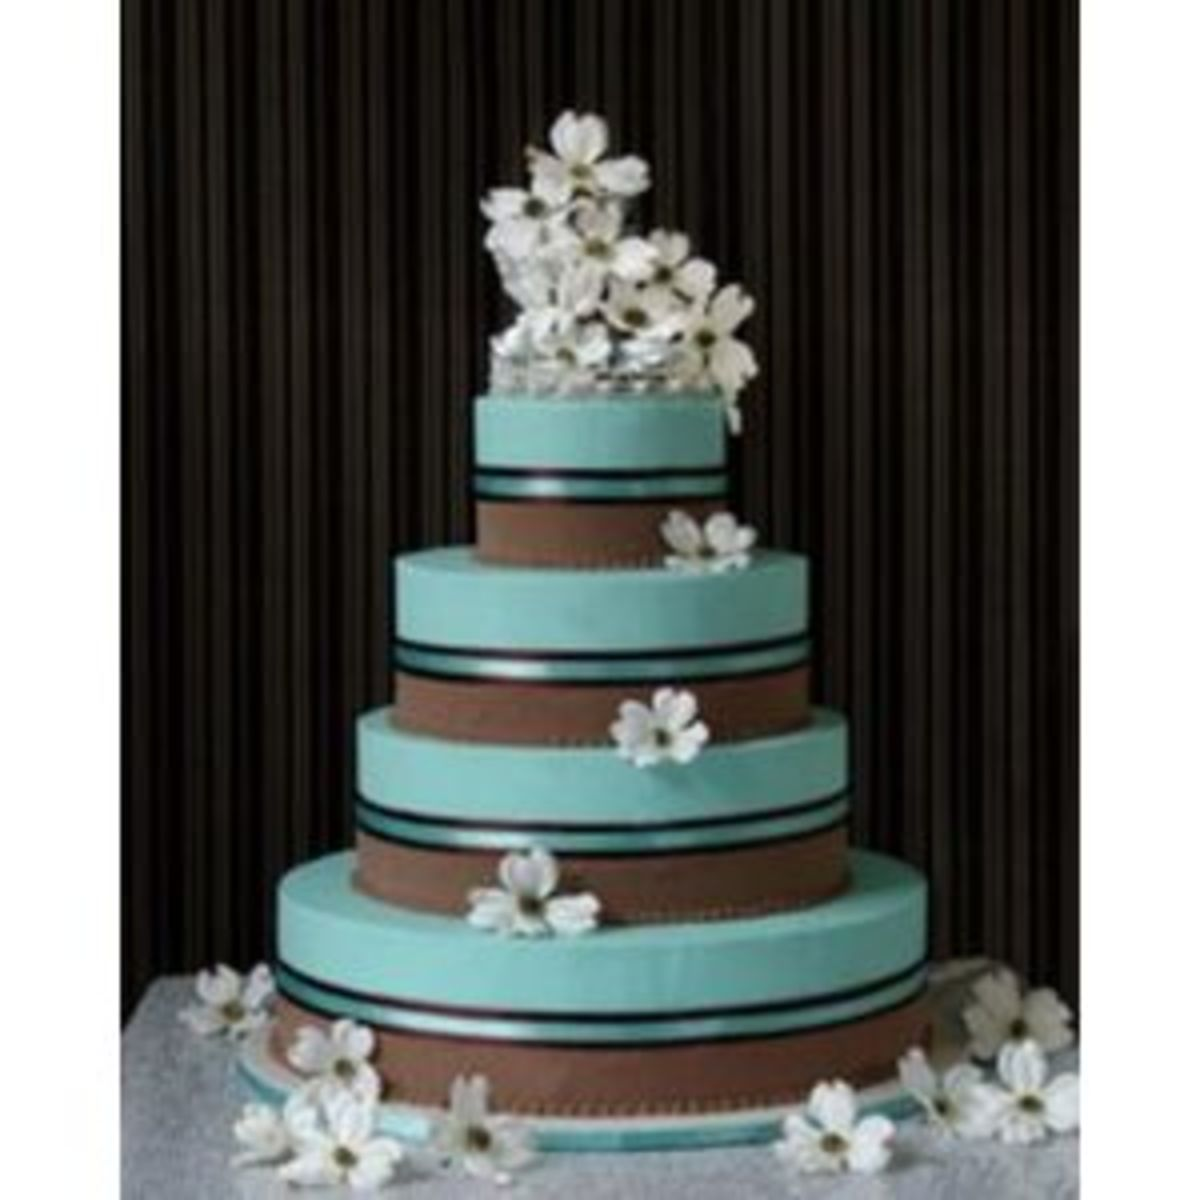 Turquoise and chocolate brown wedding cake theme [polyvore.com]